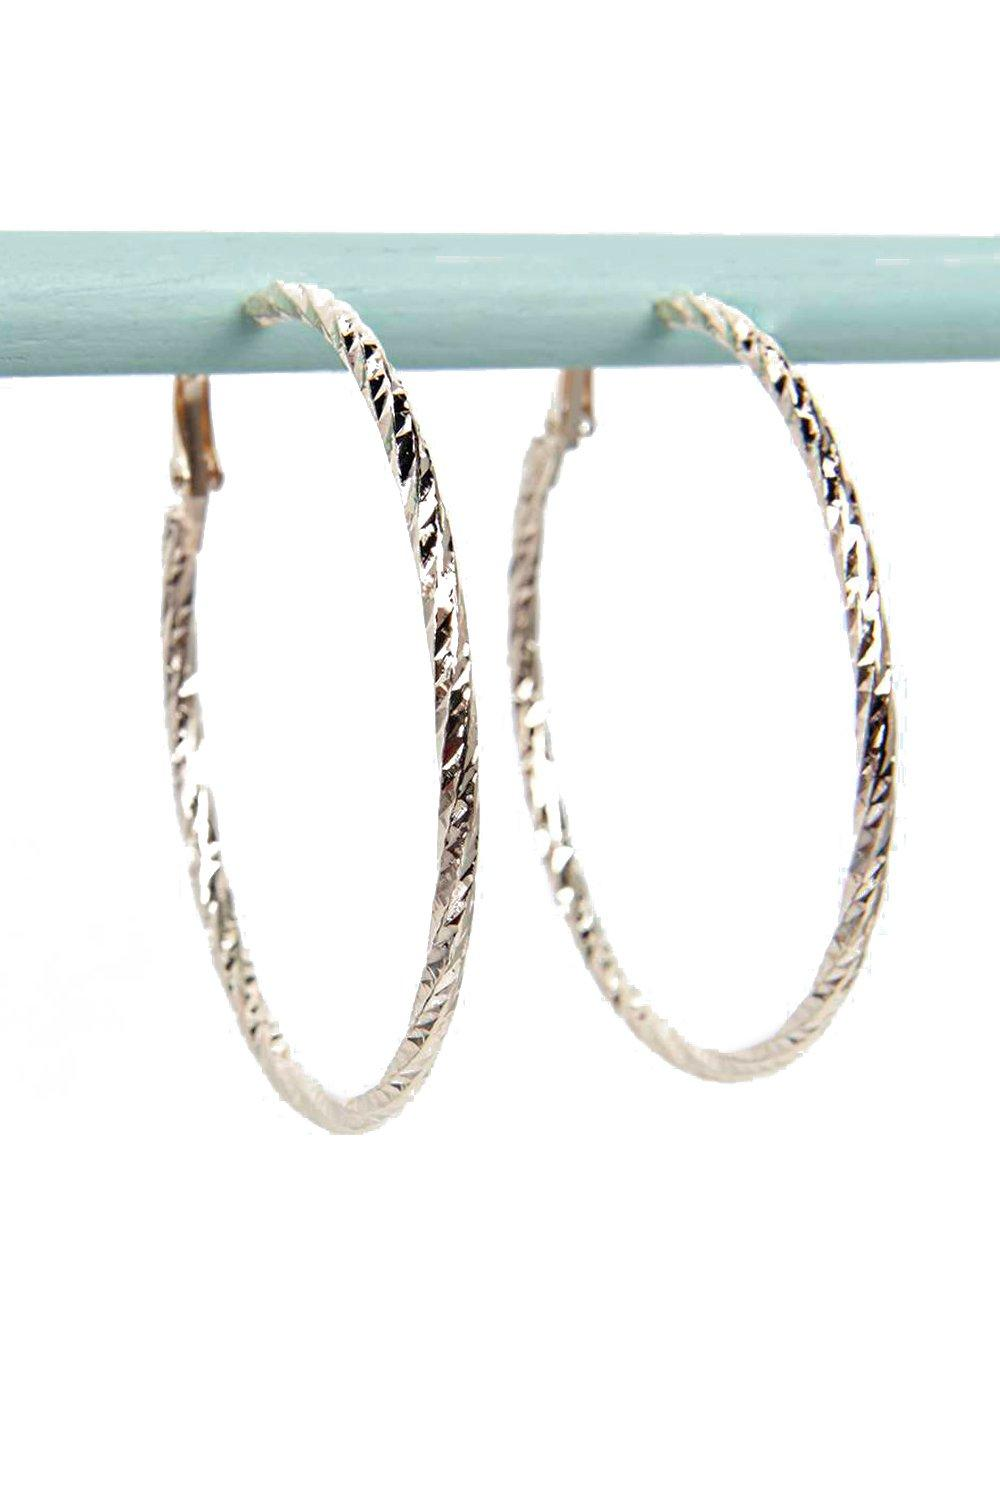 Daisy Faceted 5.5cm Hoop Earrings